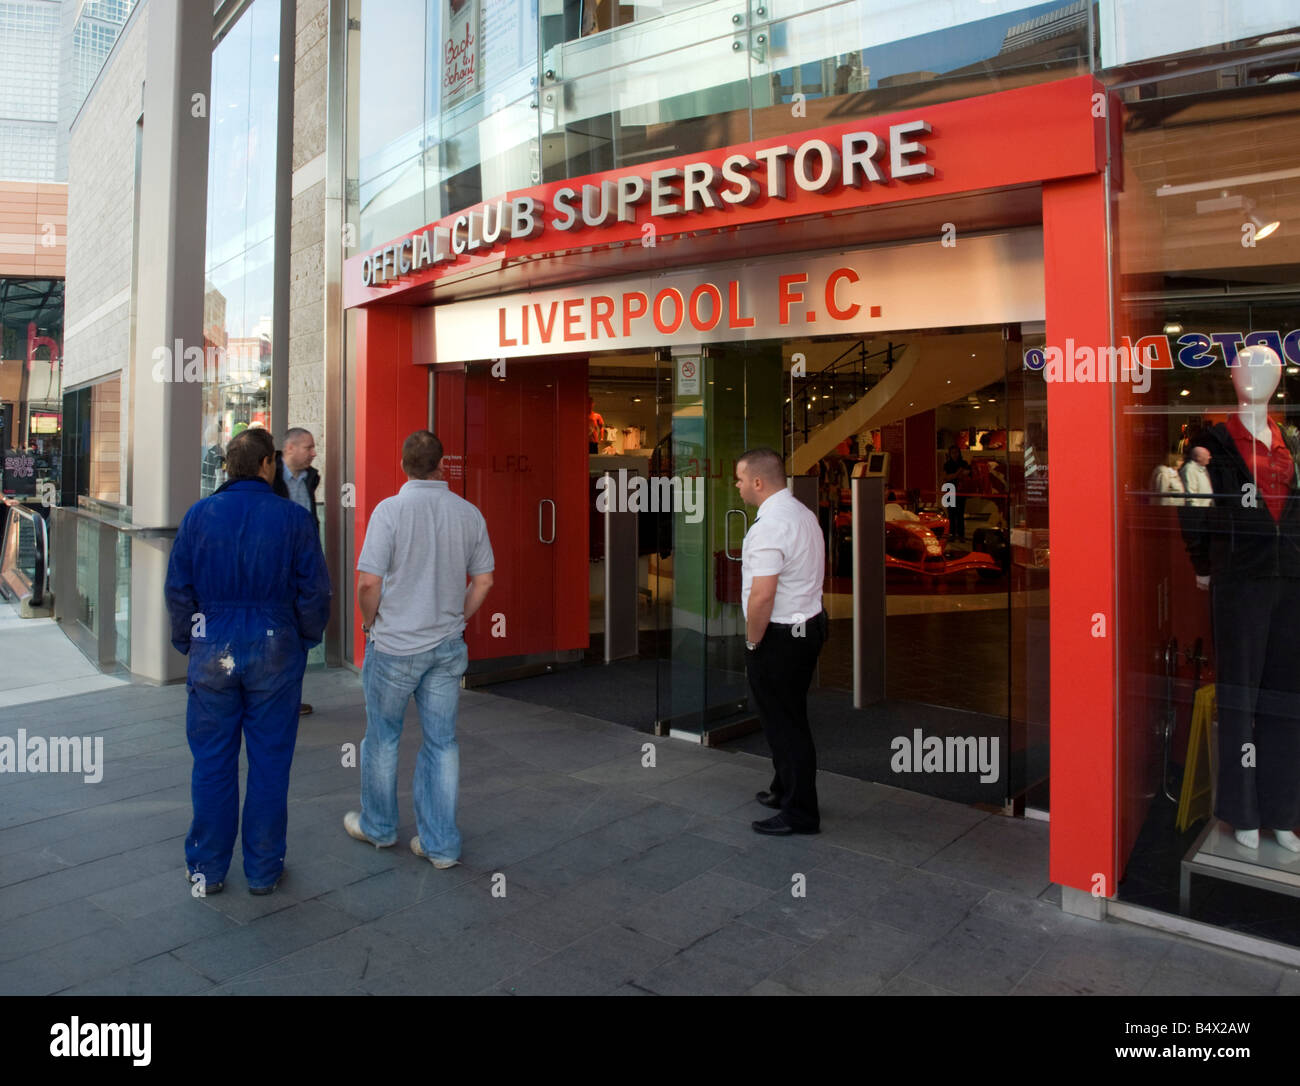 Liverpool football club official supporters store - Stock Image